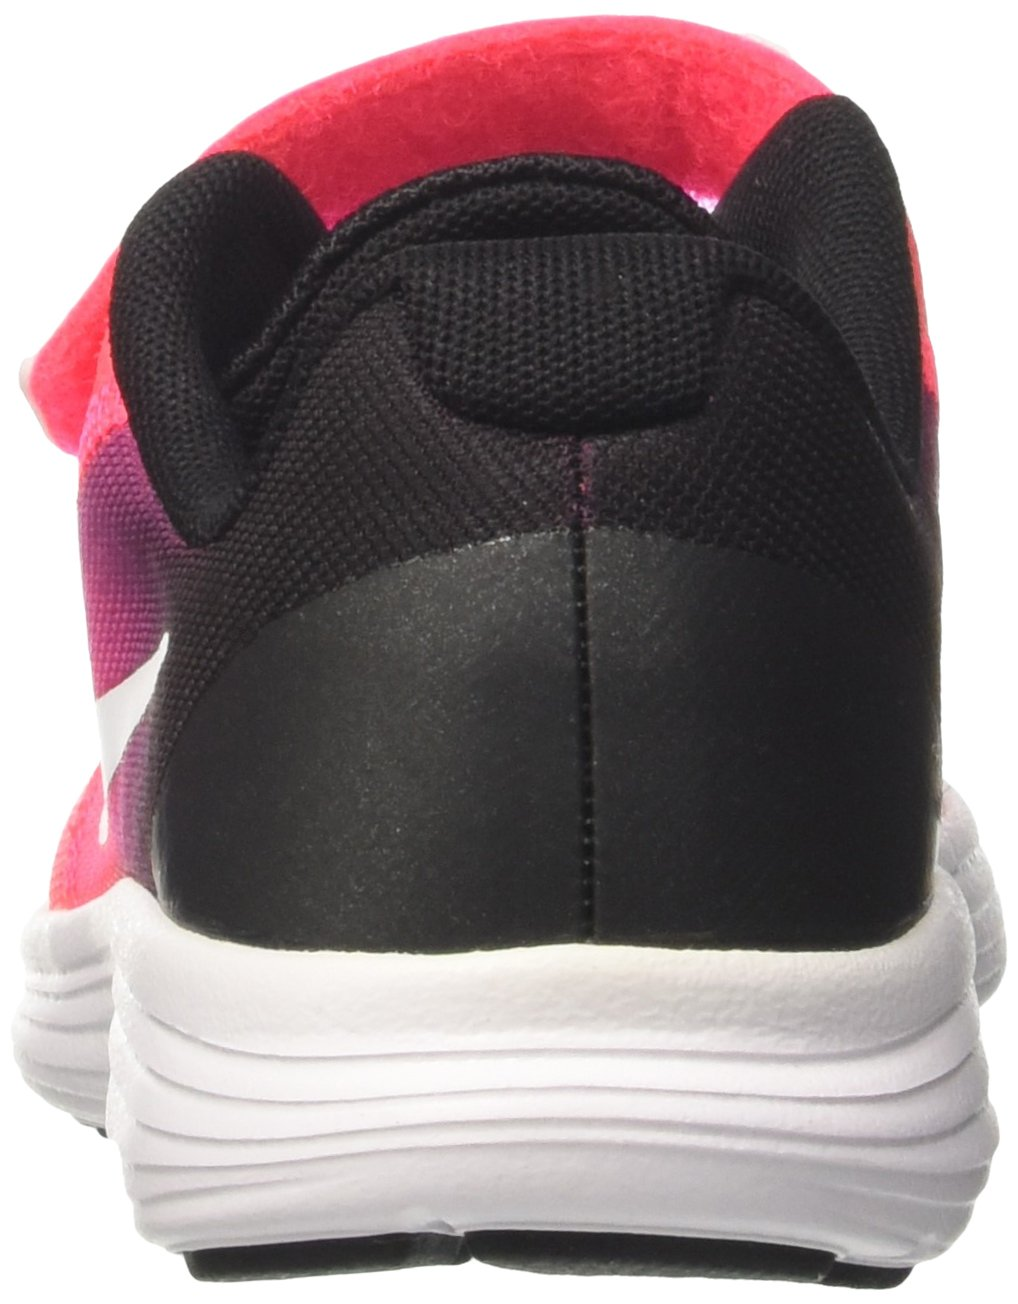 NIKE Kids' Revolution 3 (Psv) Running-Shoes, Black/White/Racer Pink/Black, 1 M US Little Kid by Nike (Image #2)